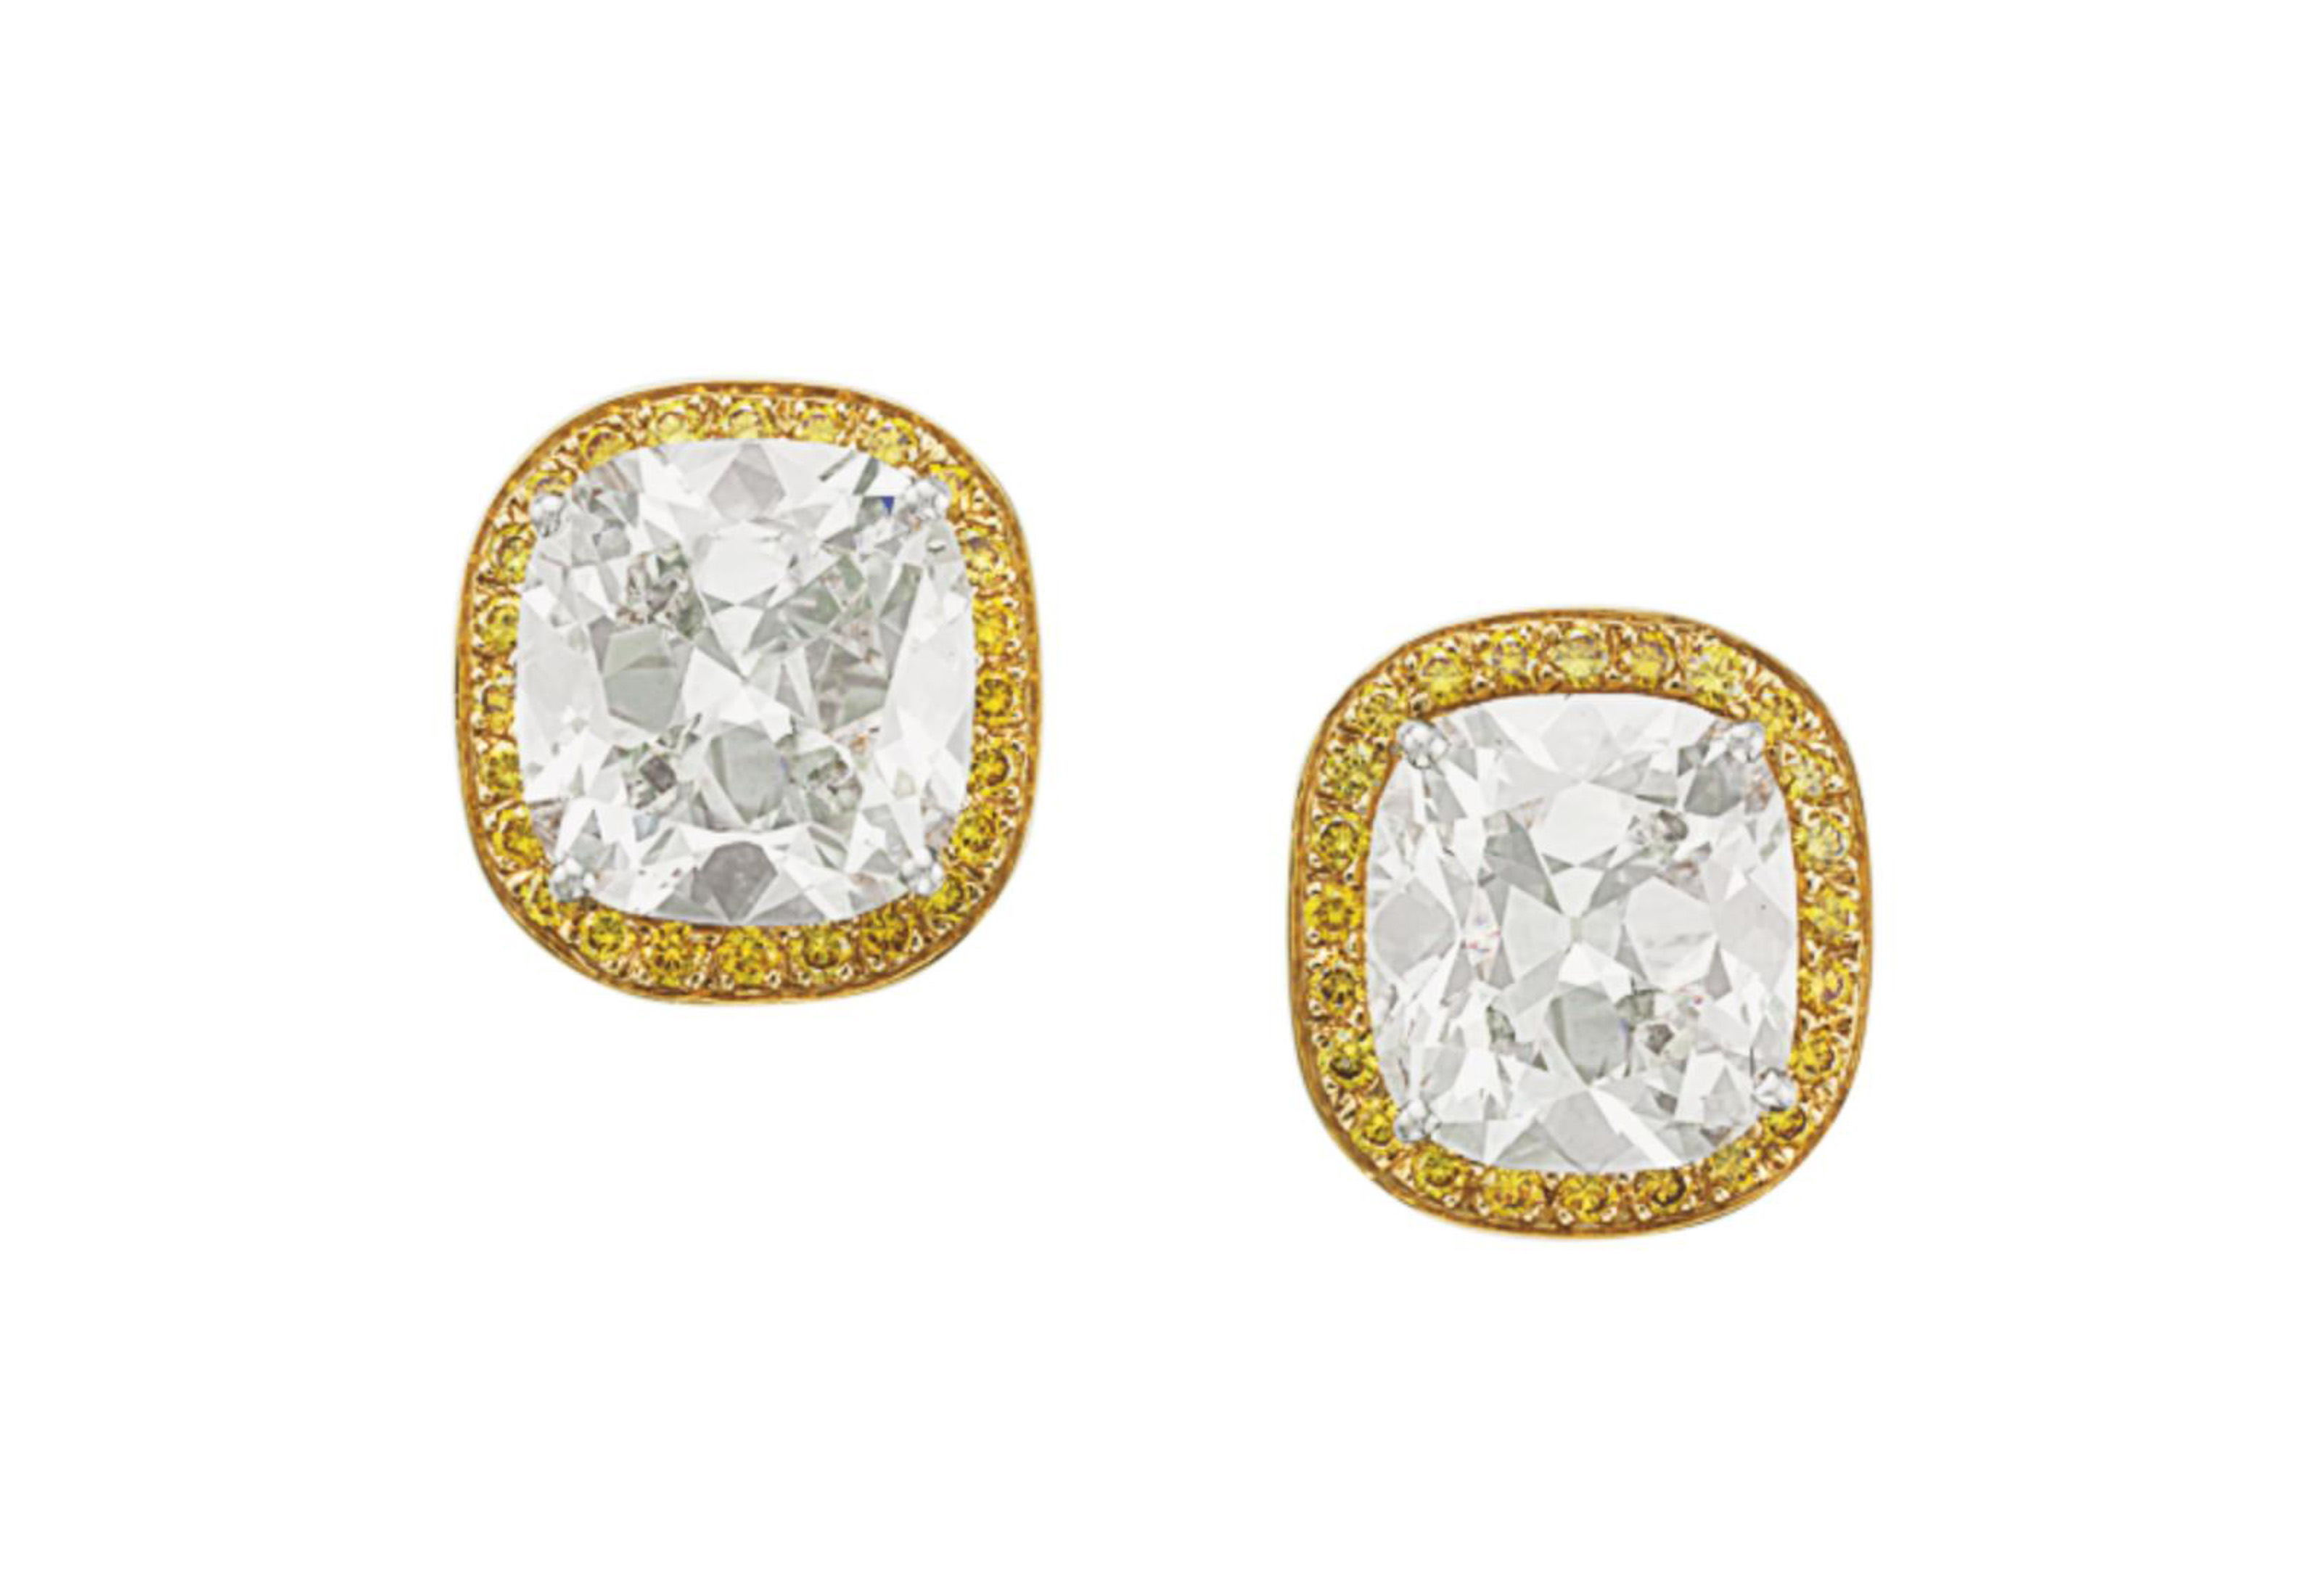 A PAIR OF DIAMOND AND COLORED DIAMOND EAR CLIPS, BY OSCAR HEYMAN & BROTHERS